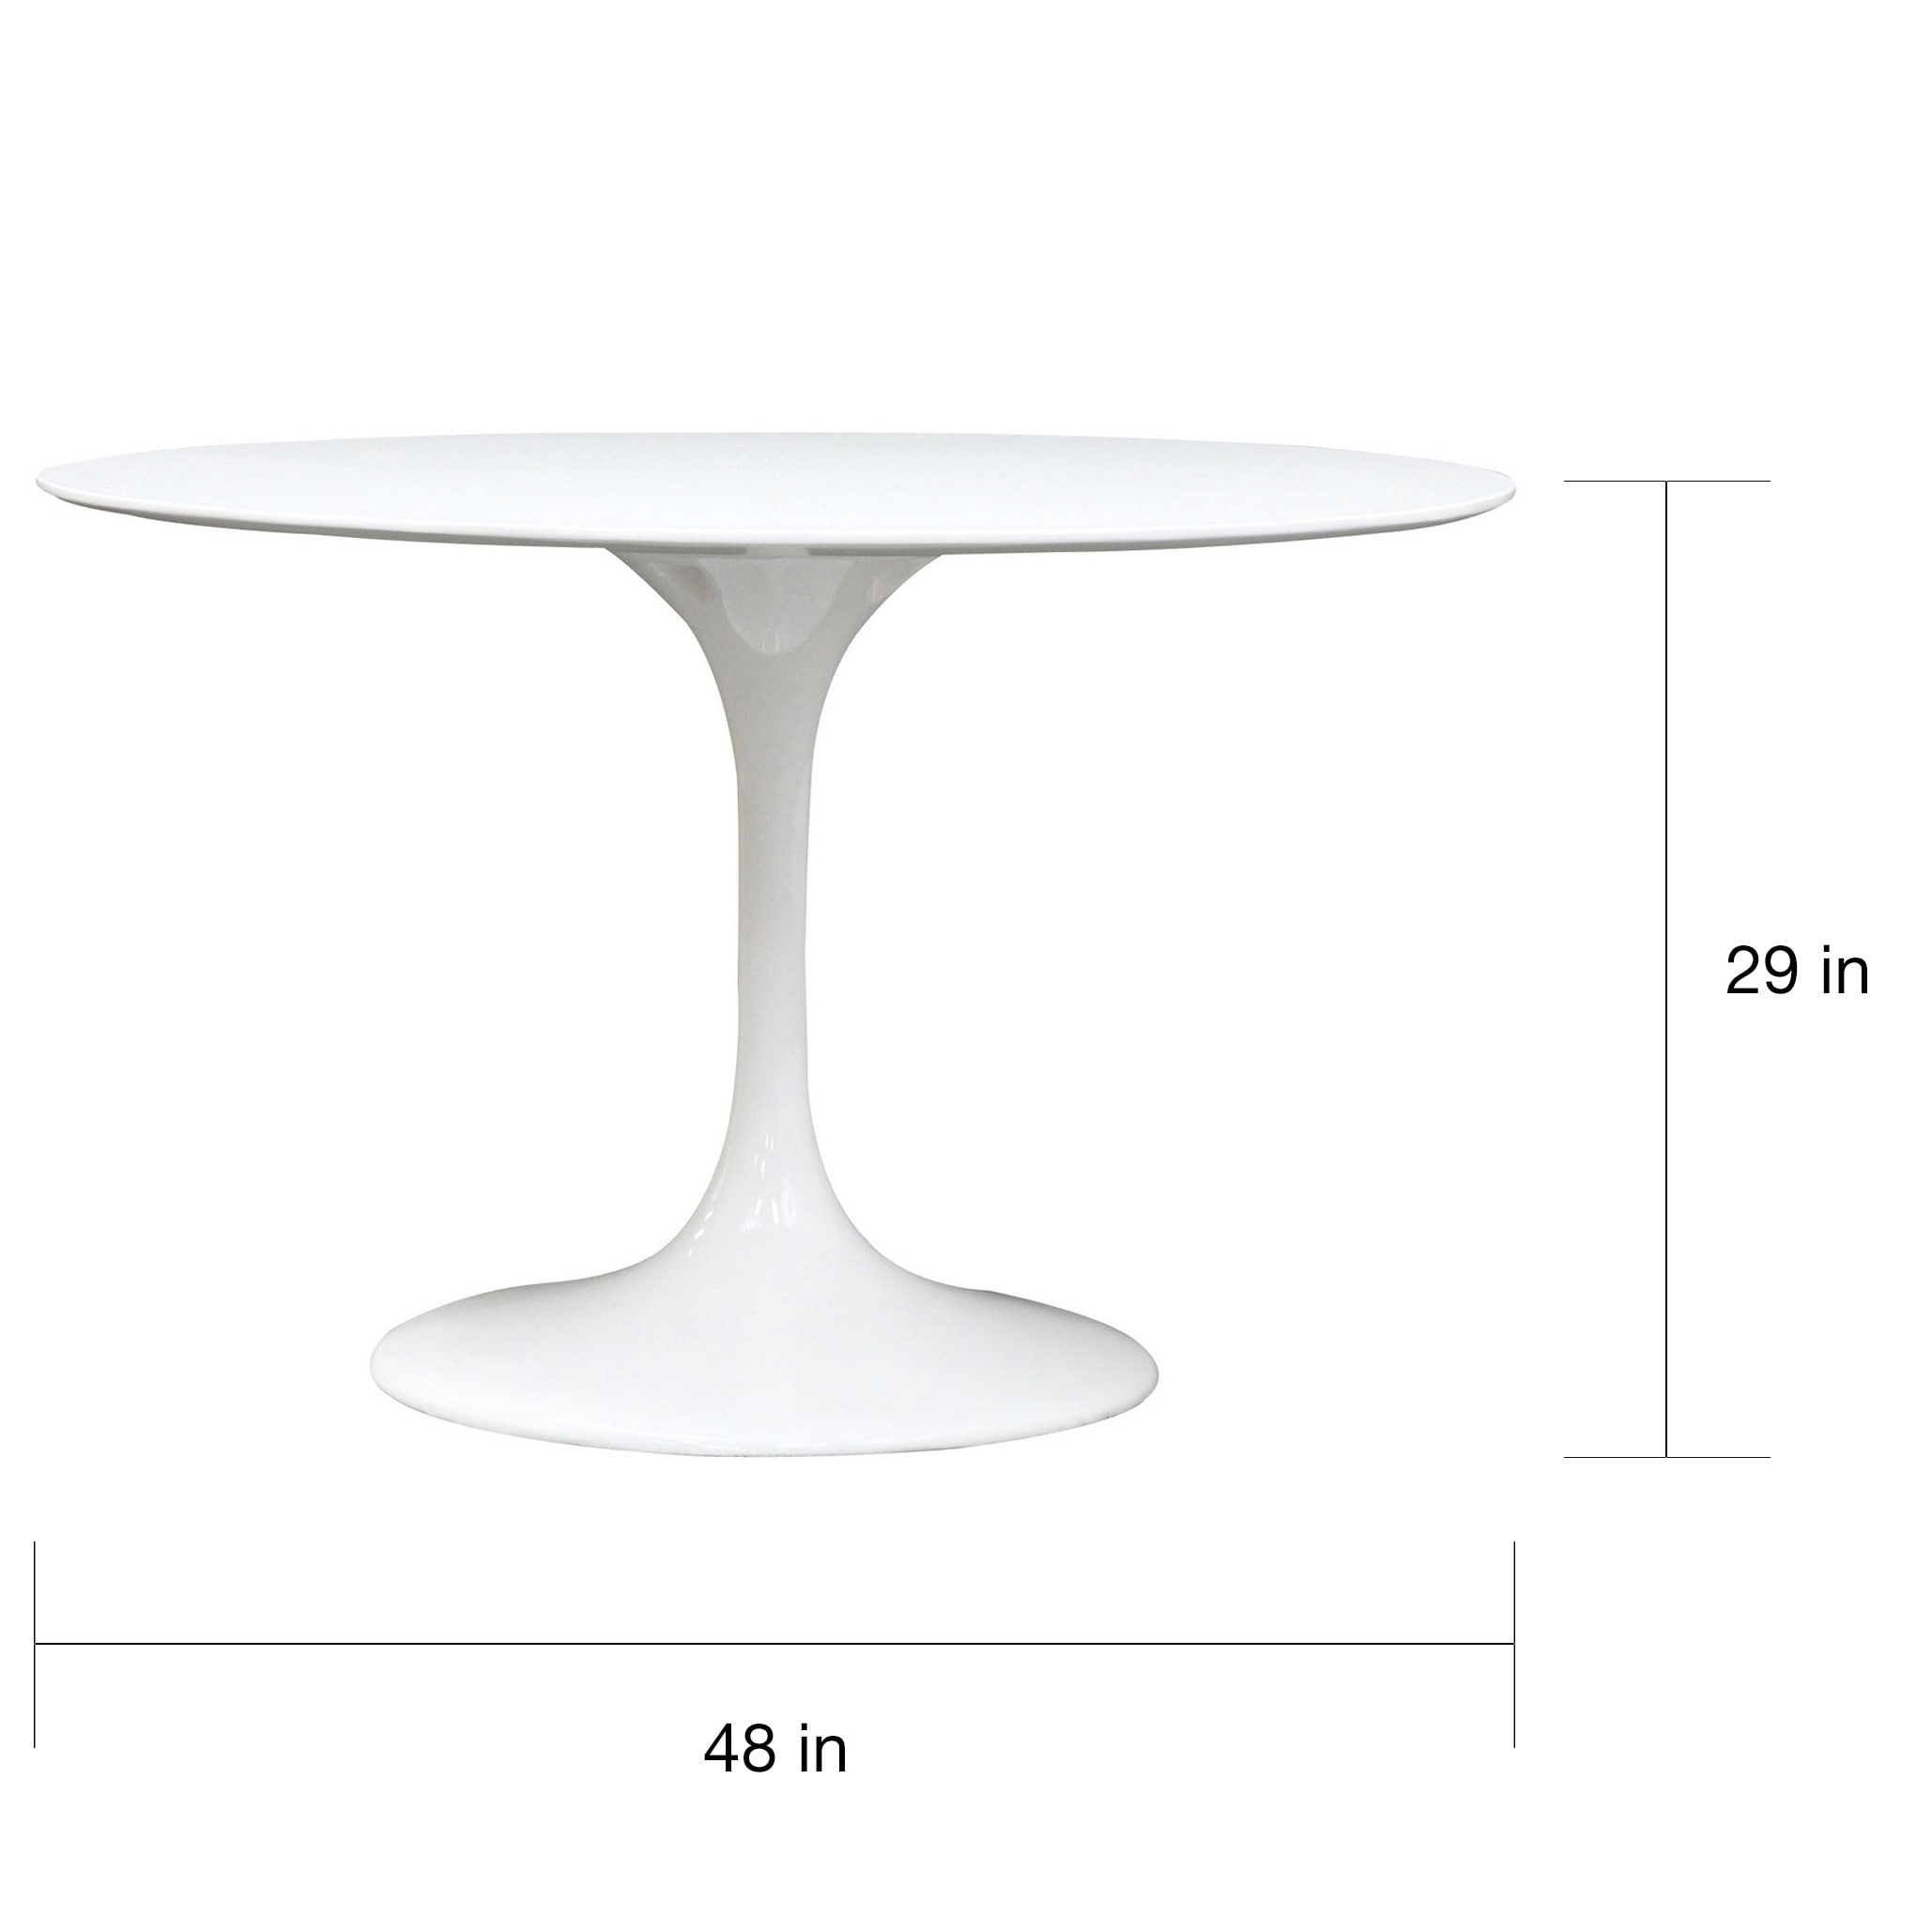 Superb Eero Saarinen Style 48 Inch White Tulip Dining Table   Free Shipping Today    Overstock.com   14230619